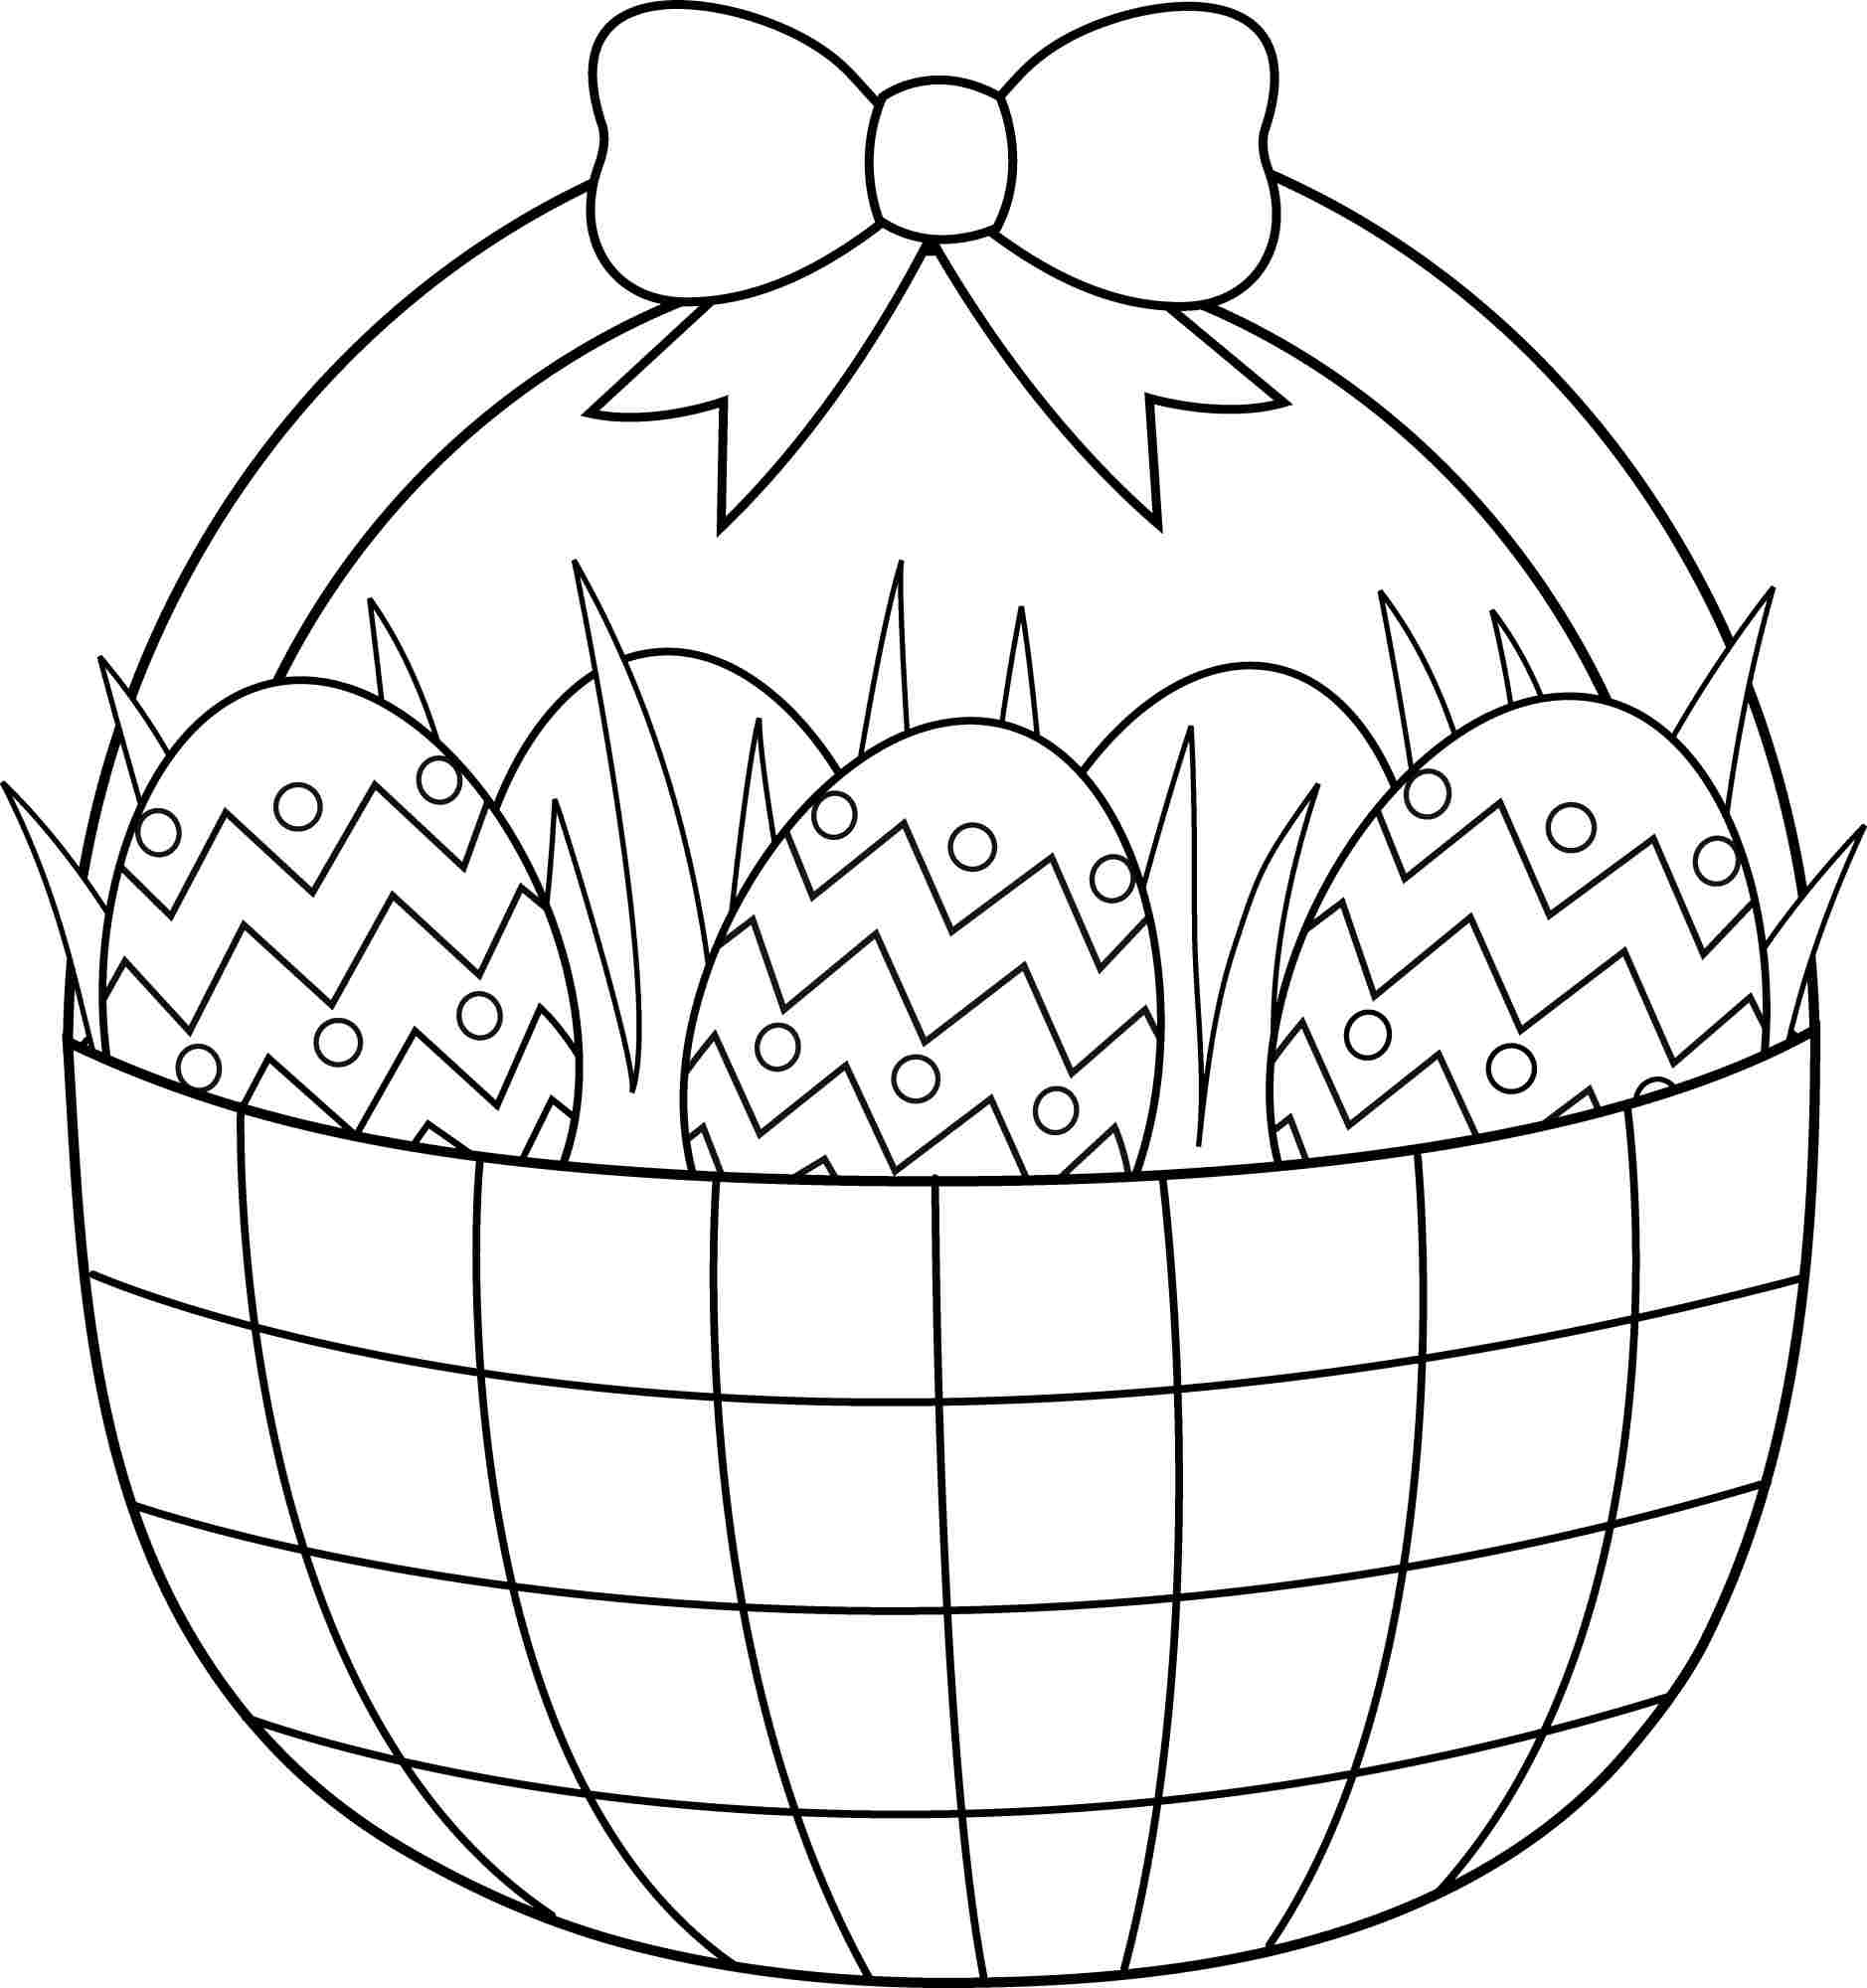 Easter Basket Printable Coloring Pages Empty Easter Basket Coloring Page 2 The Easter Bunny Org